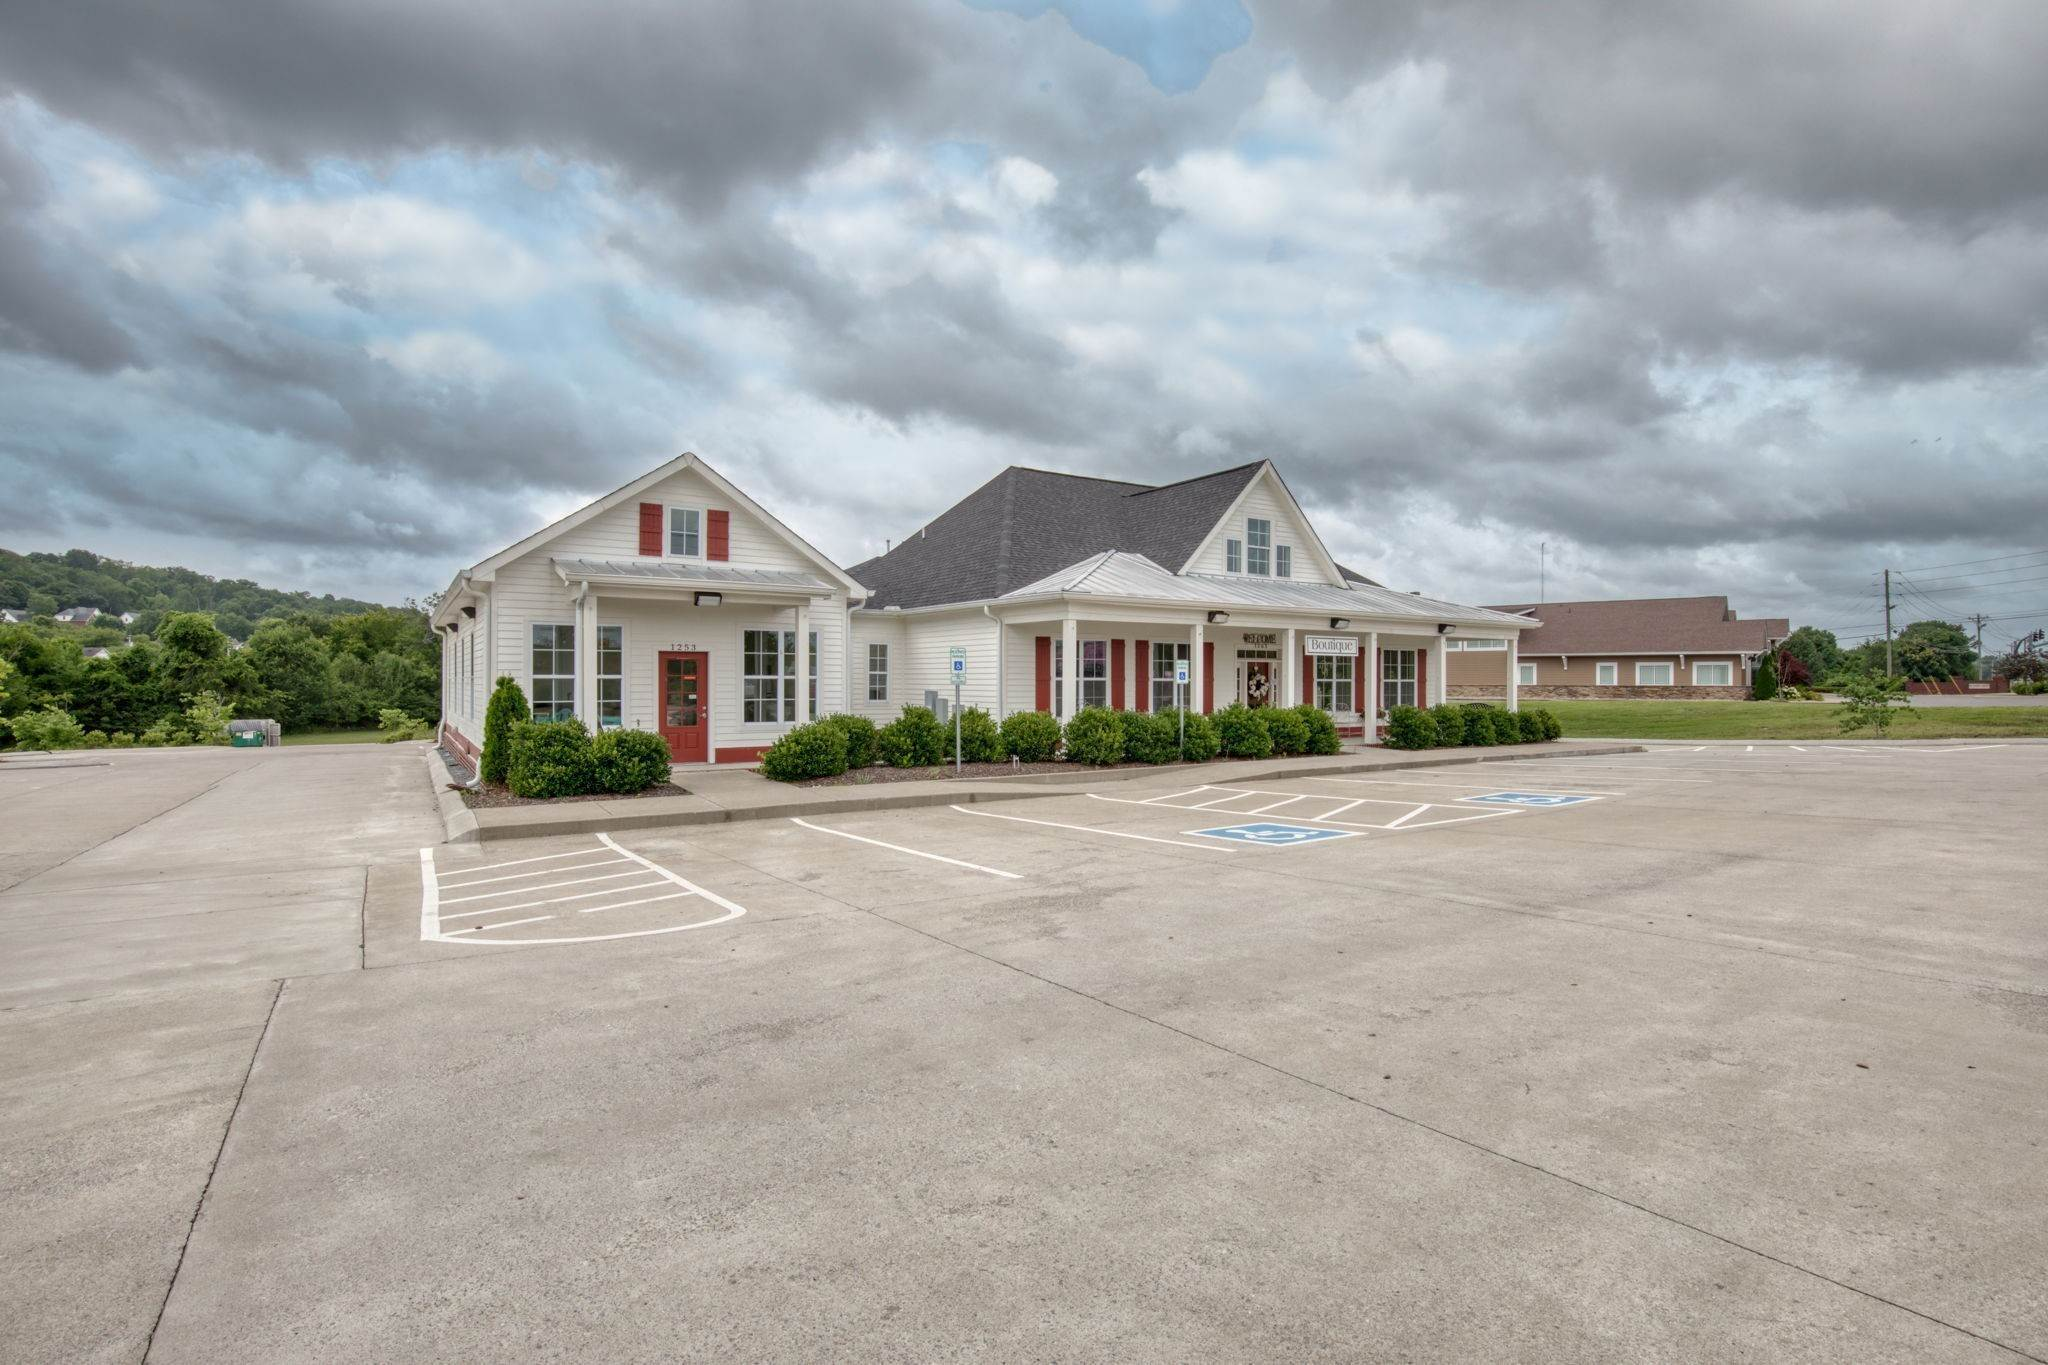 Commercial for Sale at 1271 Rock Springs Road Smyrna, Tennessee 37167 United States